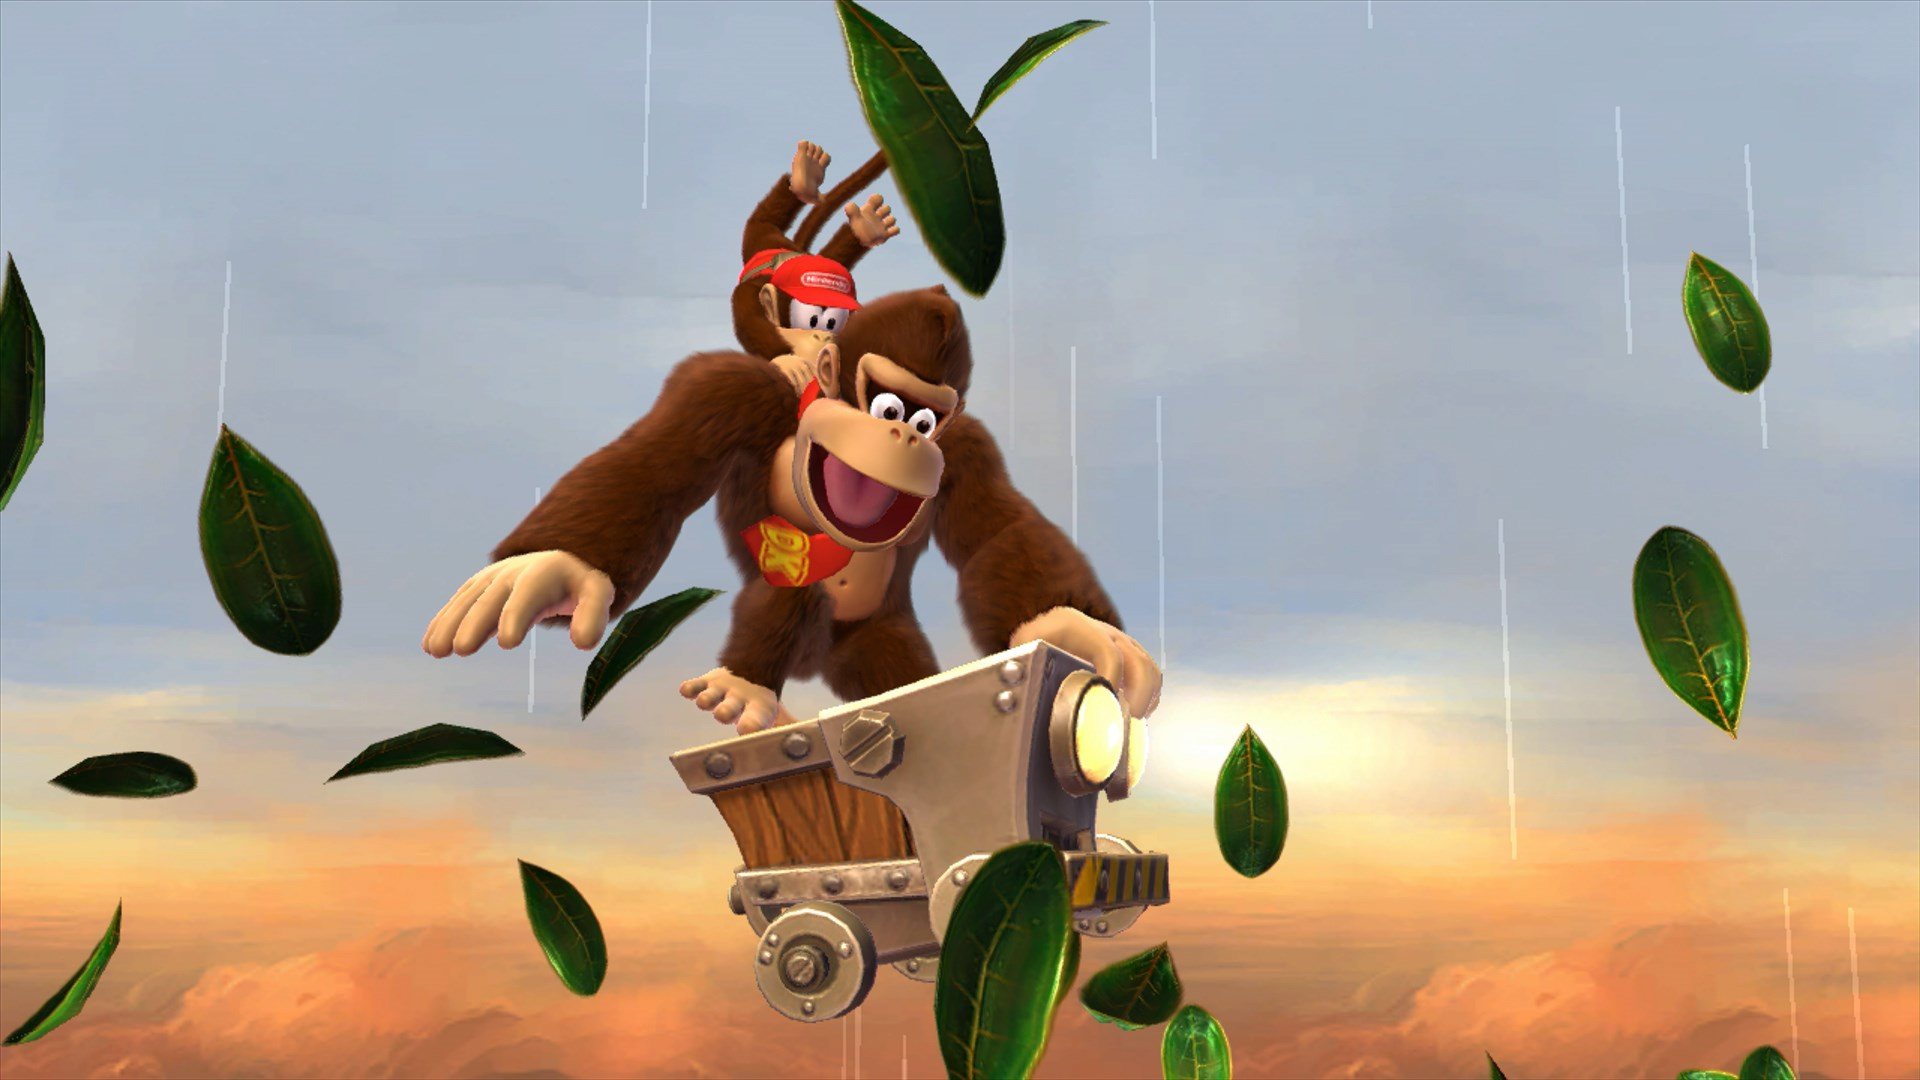 http://images.playerone.tv/source/Wii_U/Donkey-Kong-Country-Tropical-Freeze/14.jpg